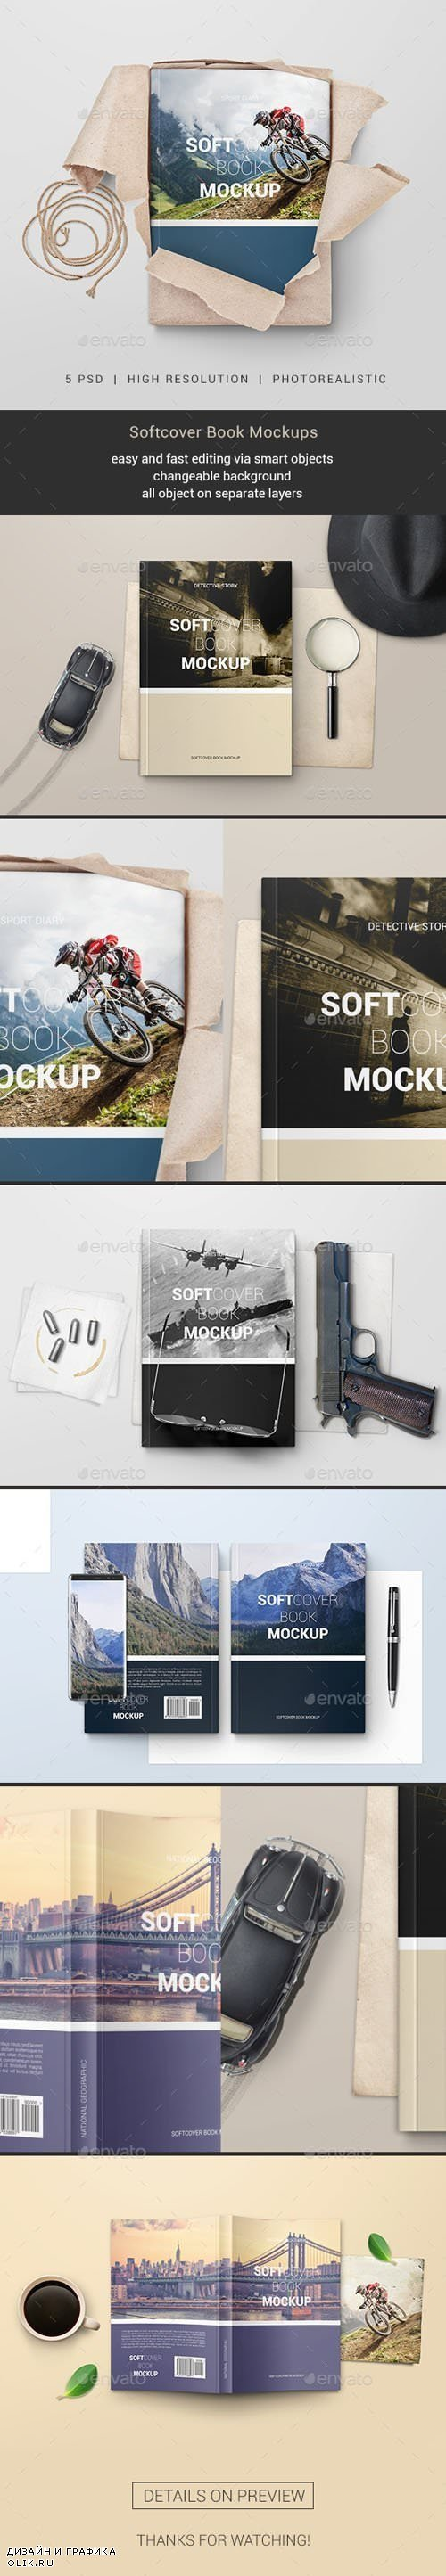 Softcover Book Mockups 20842985